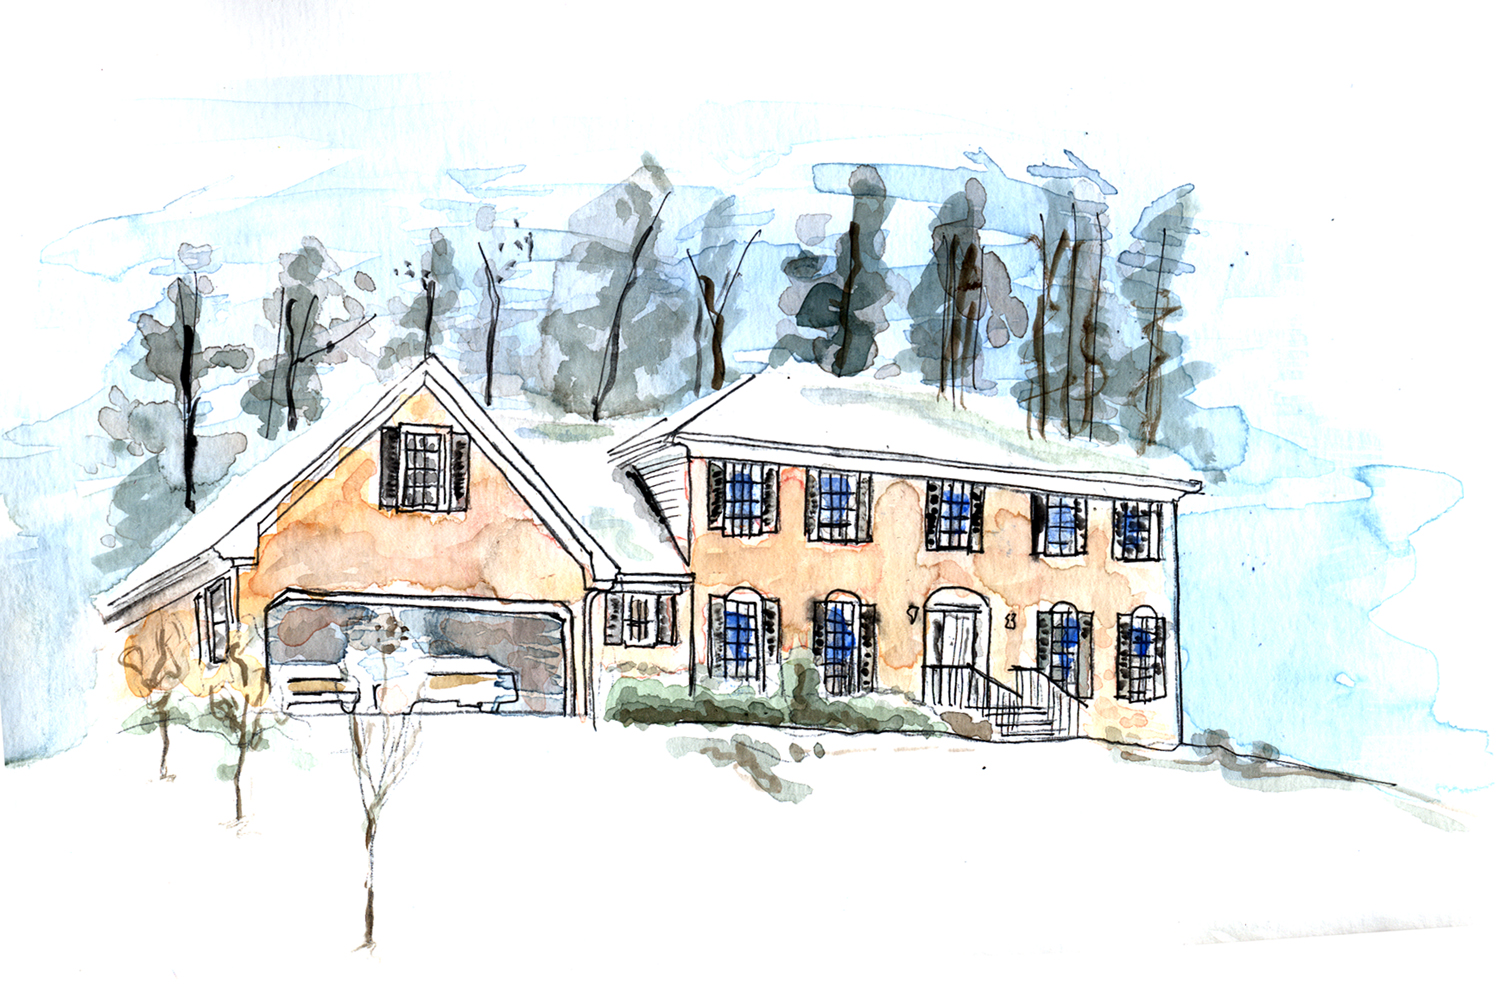 house-in-the-snow-#1-of-3